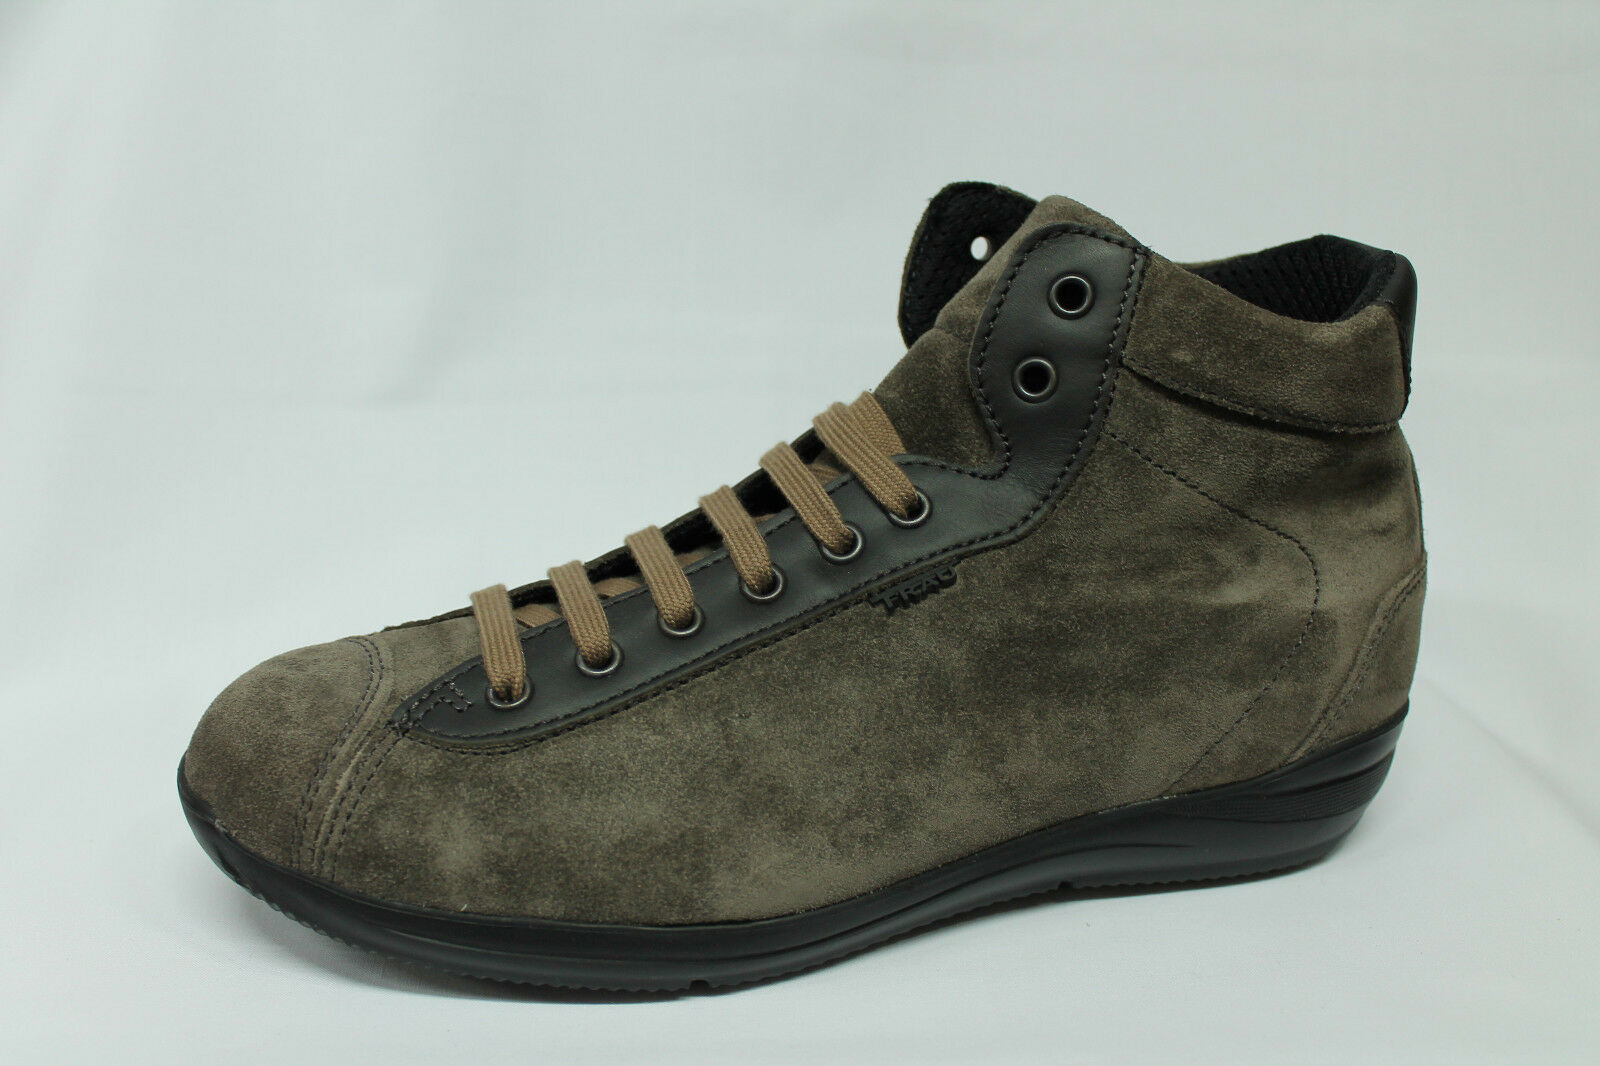 Sneakers scarponcino Frau FX 26D4 ebano Italy tipo Camper Made in Italy ebano lis125 - 20% a7fc5b